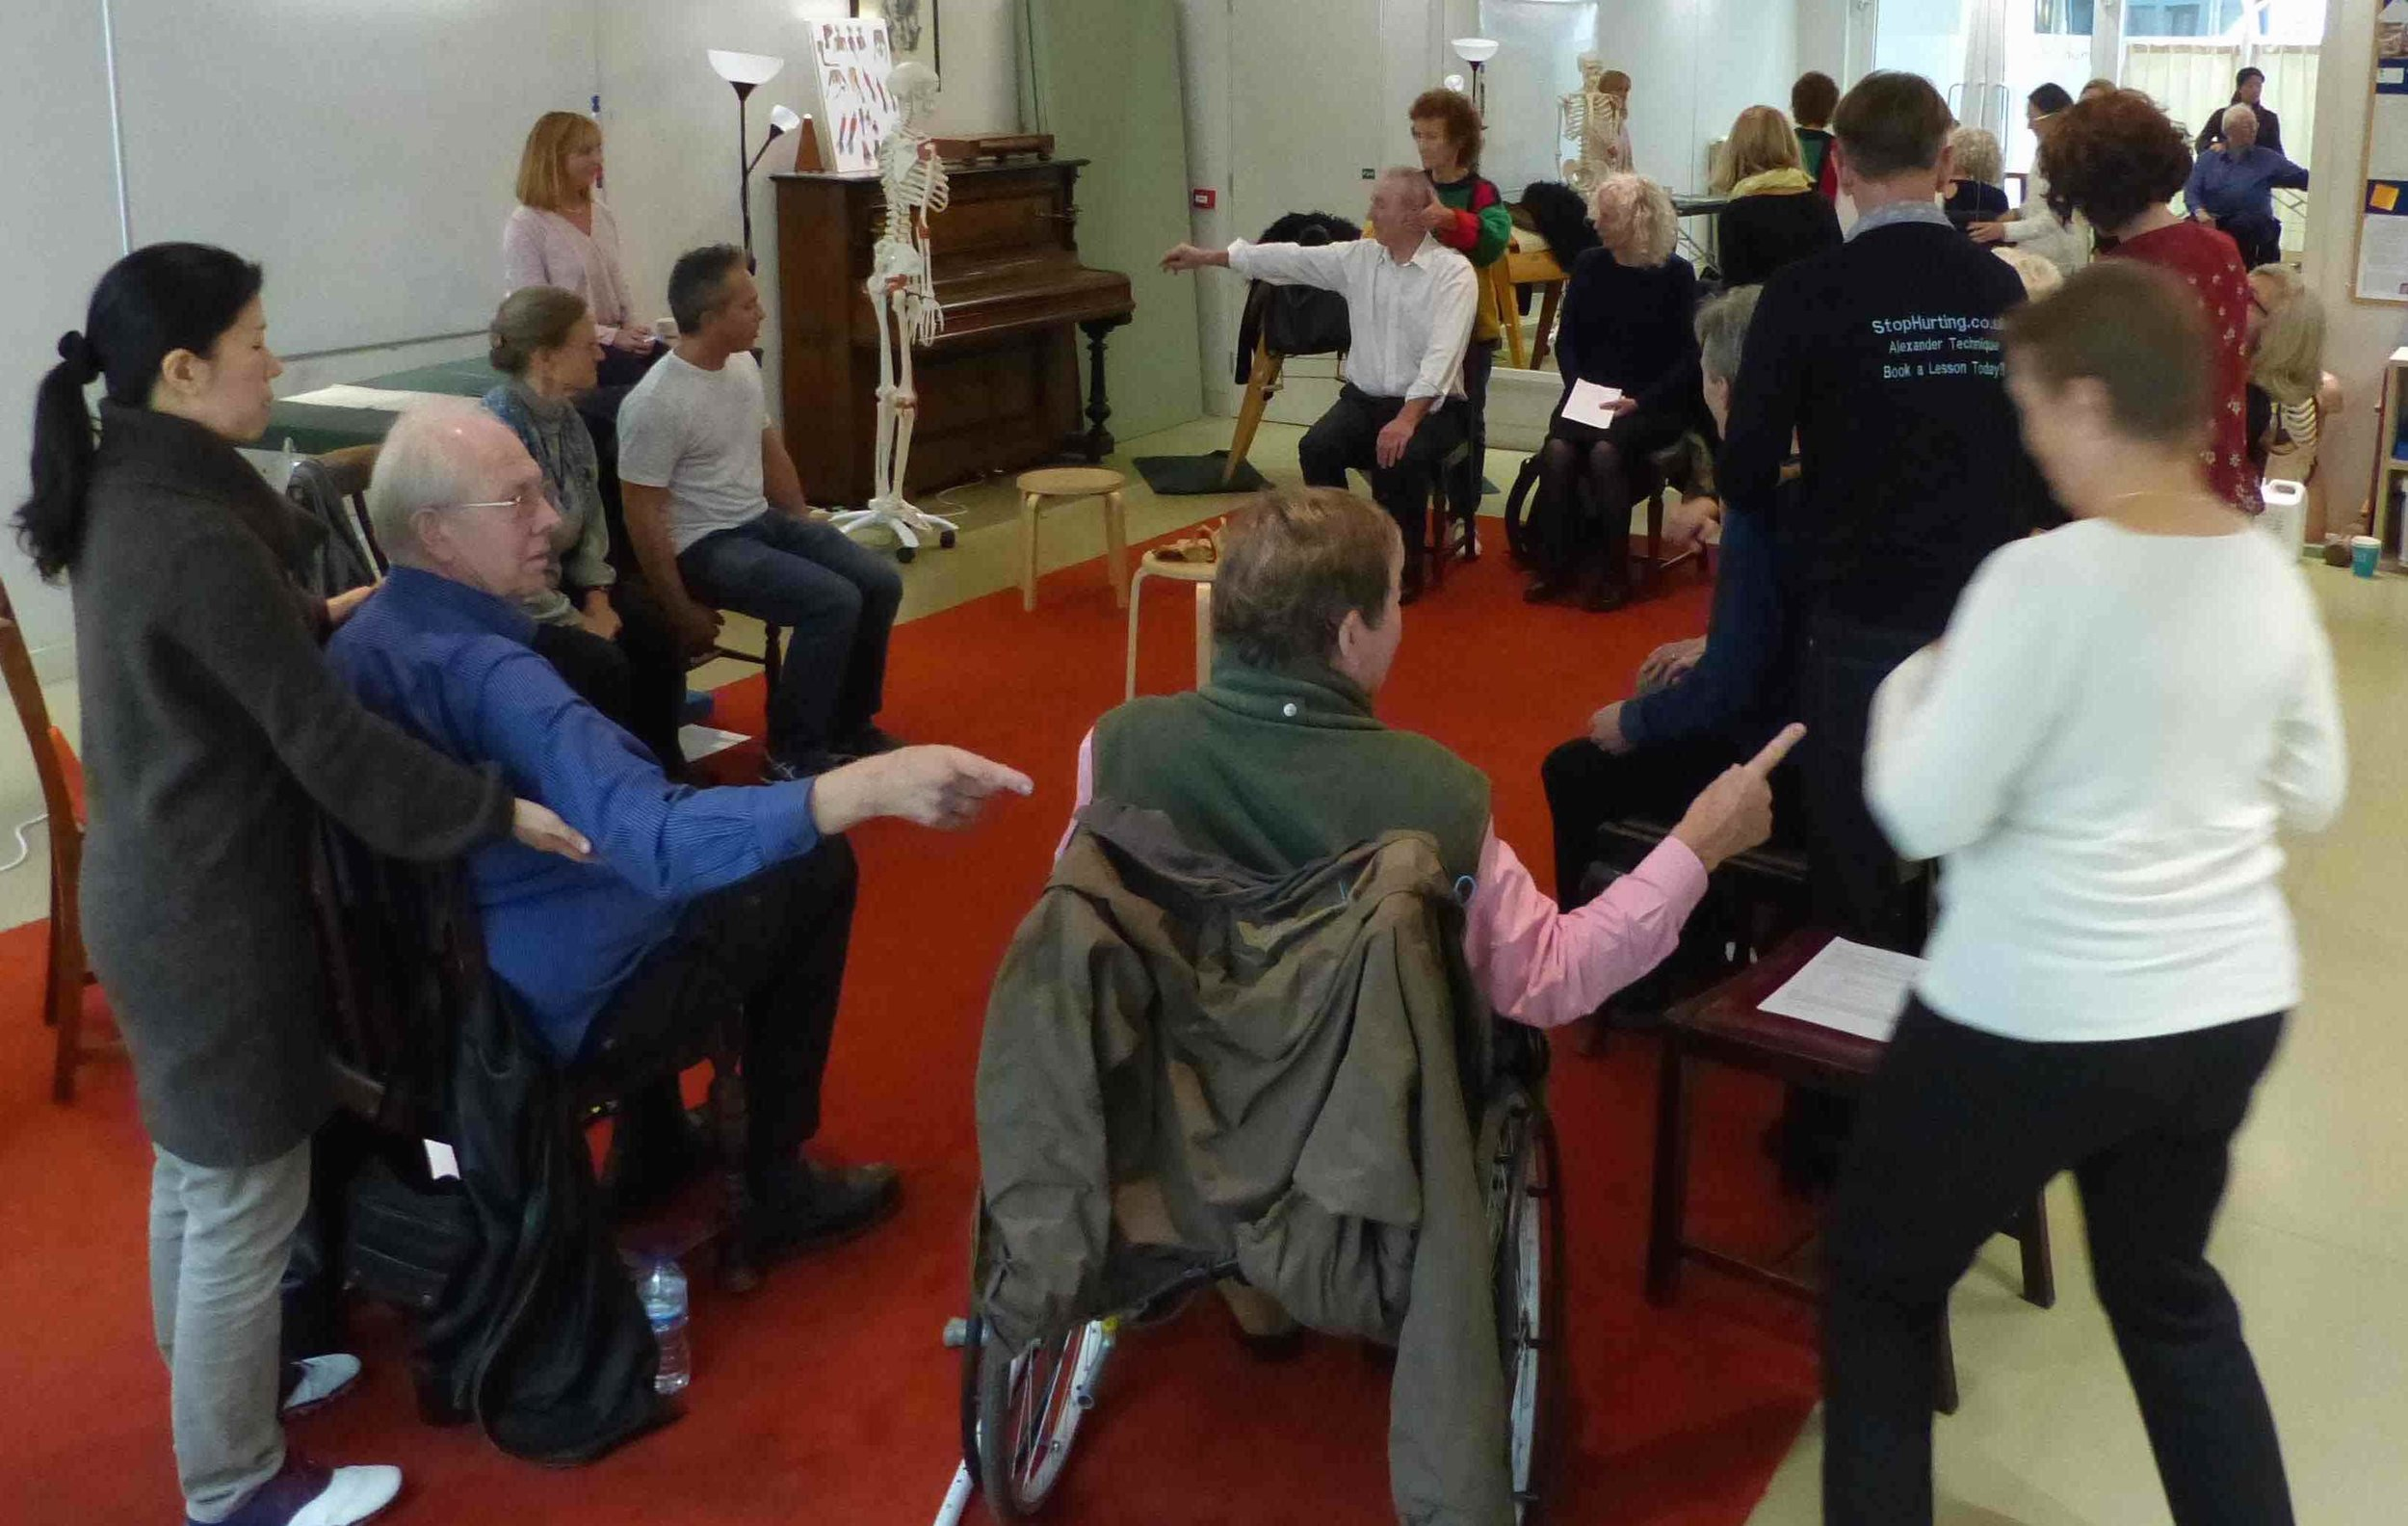 AT workshop led by Monika Gross at the Constructive Teaching Centre in London, October 2016